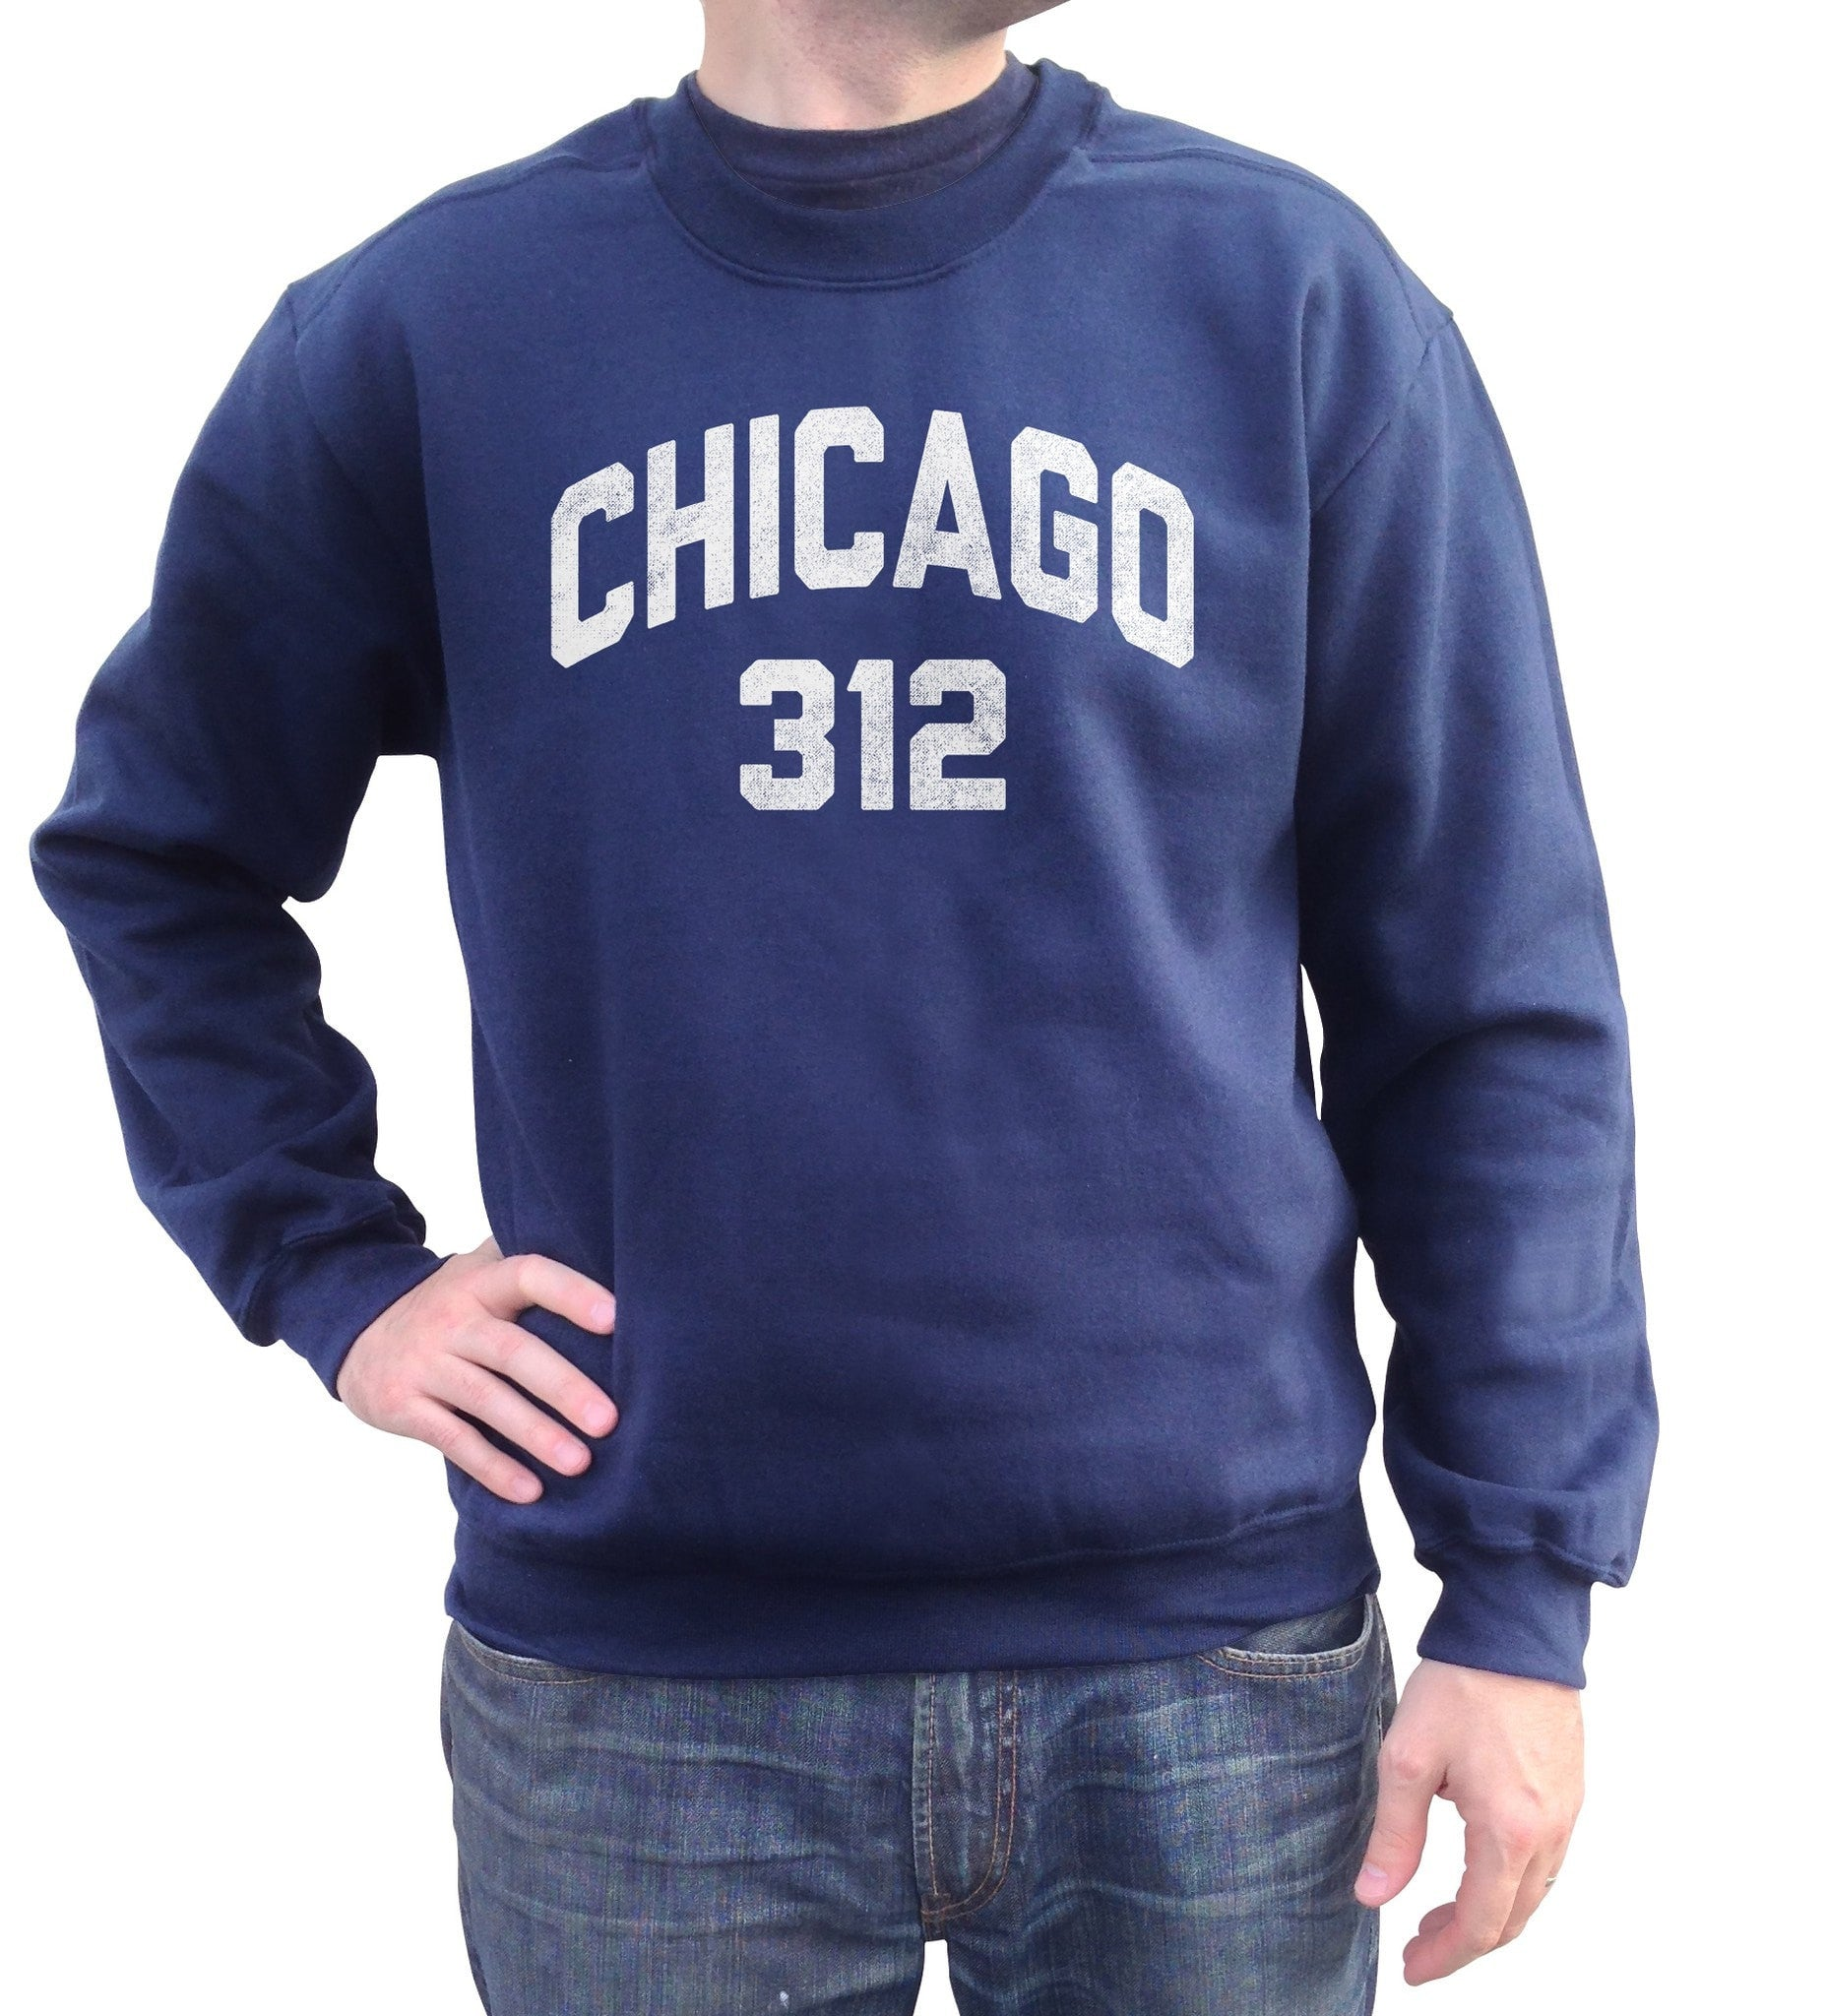 Unisex Chicago 312 Area Code Sweatshirt